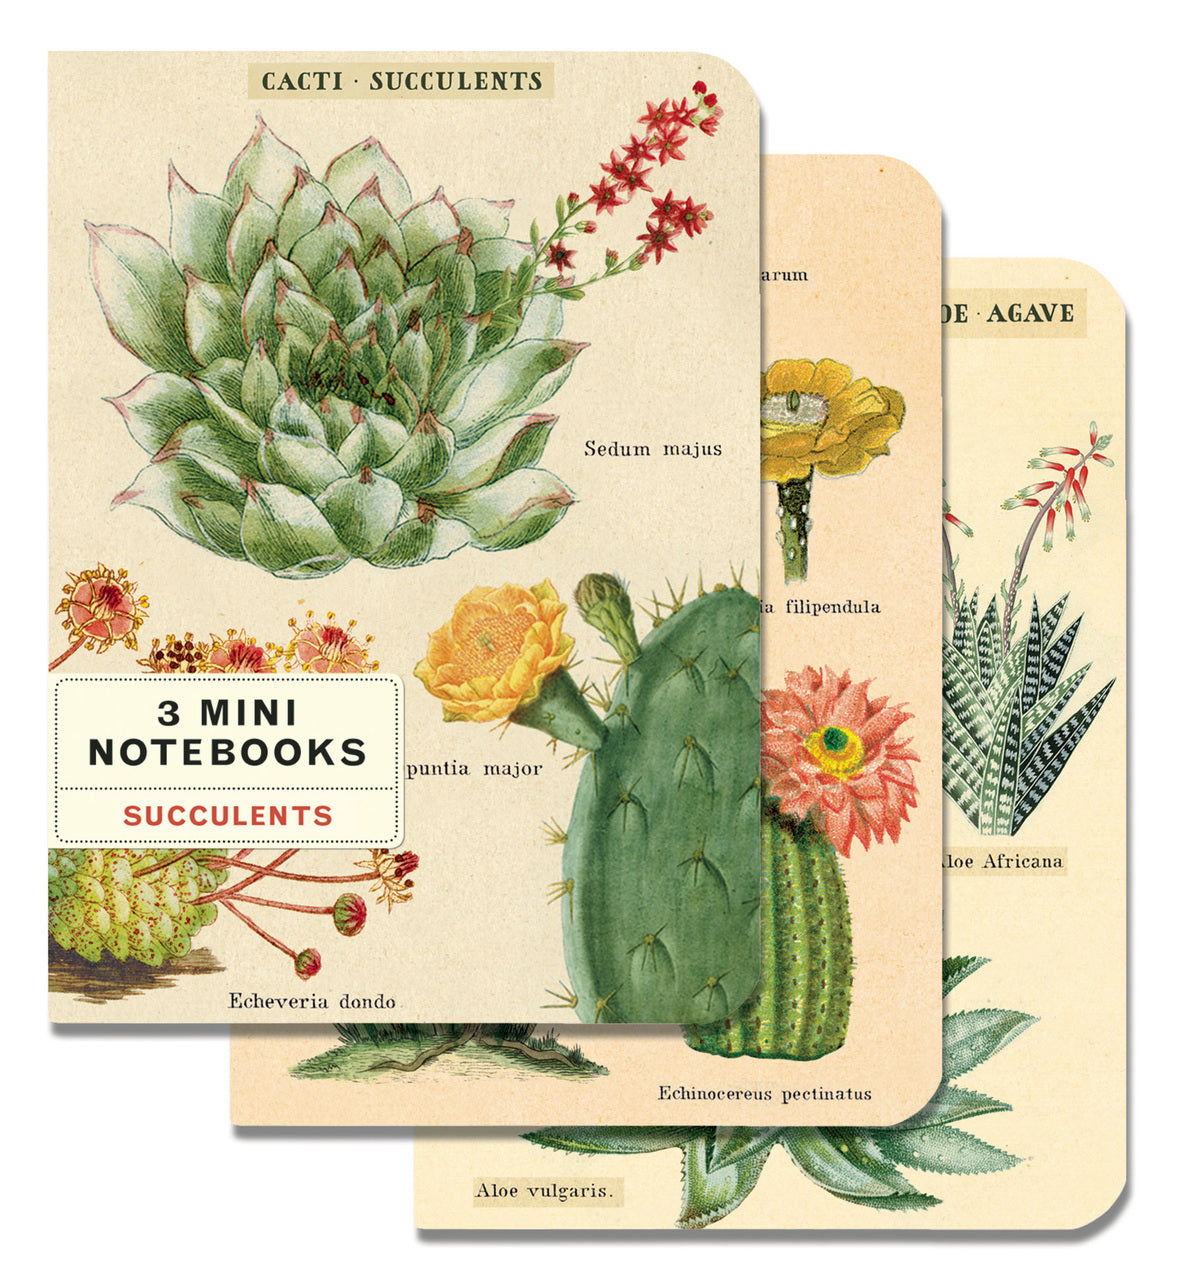 Cavallini & Co. Succulents Mini Notebook Set features three notebooks with vintage scientific images of succulents.